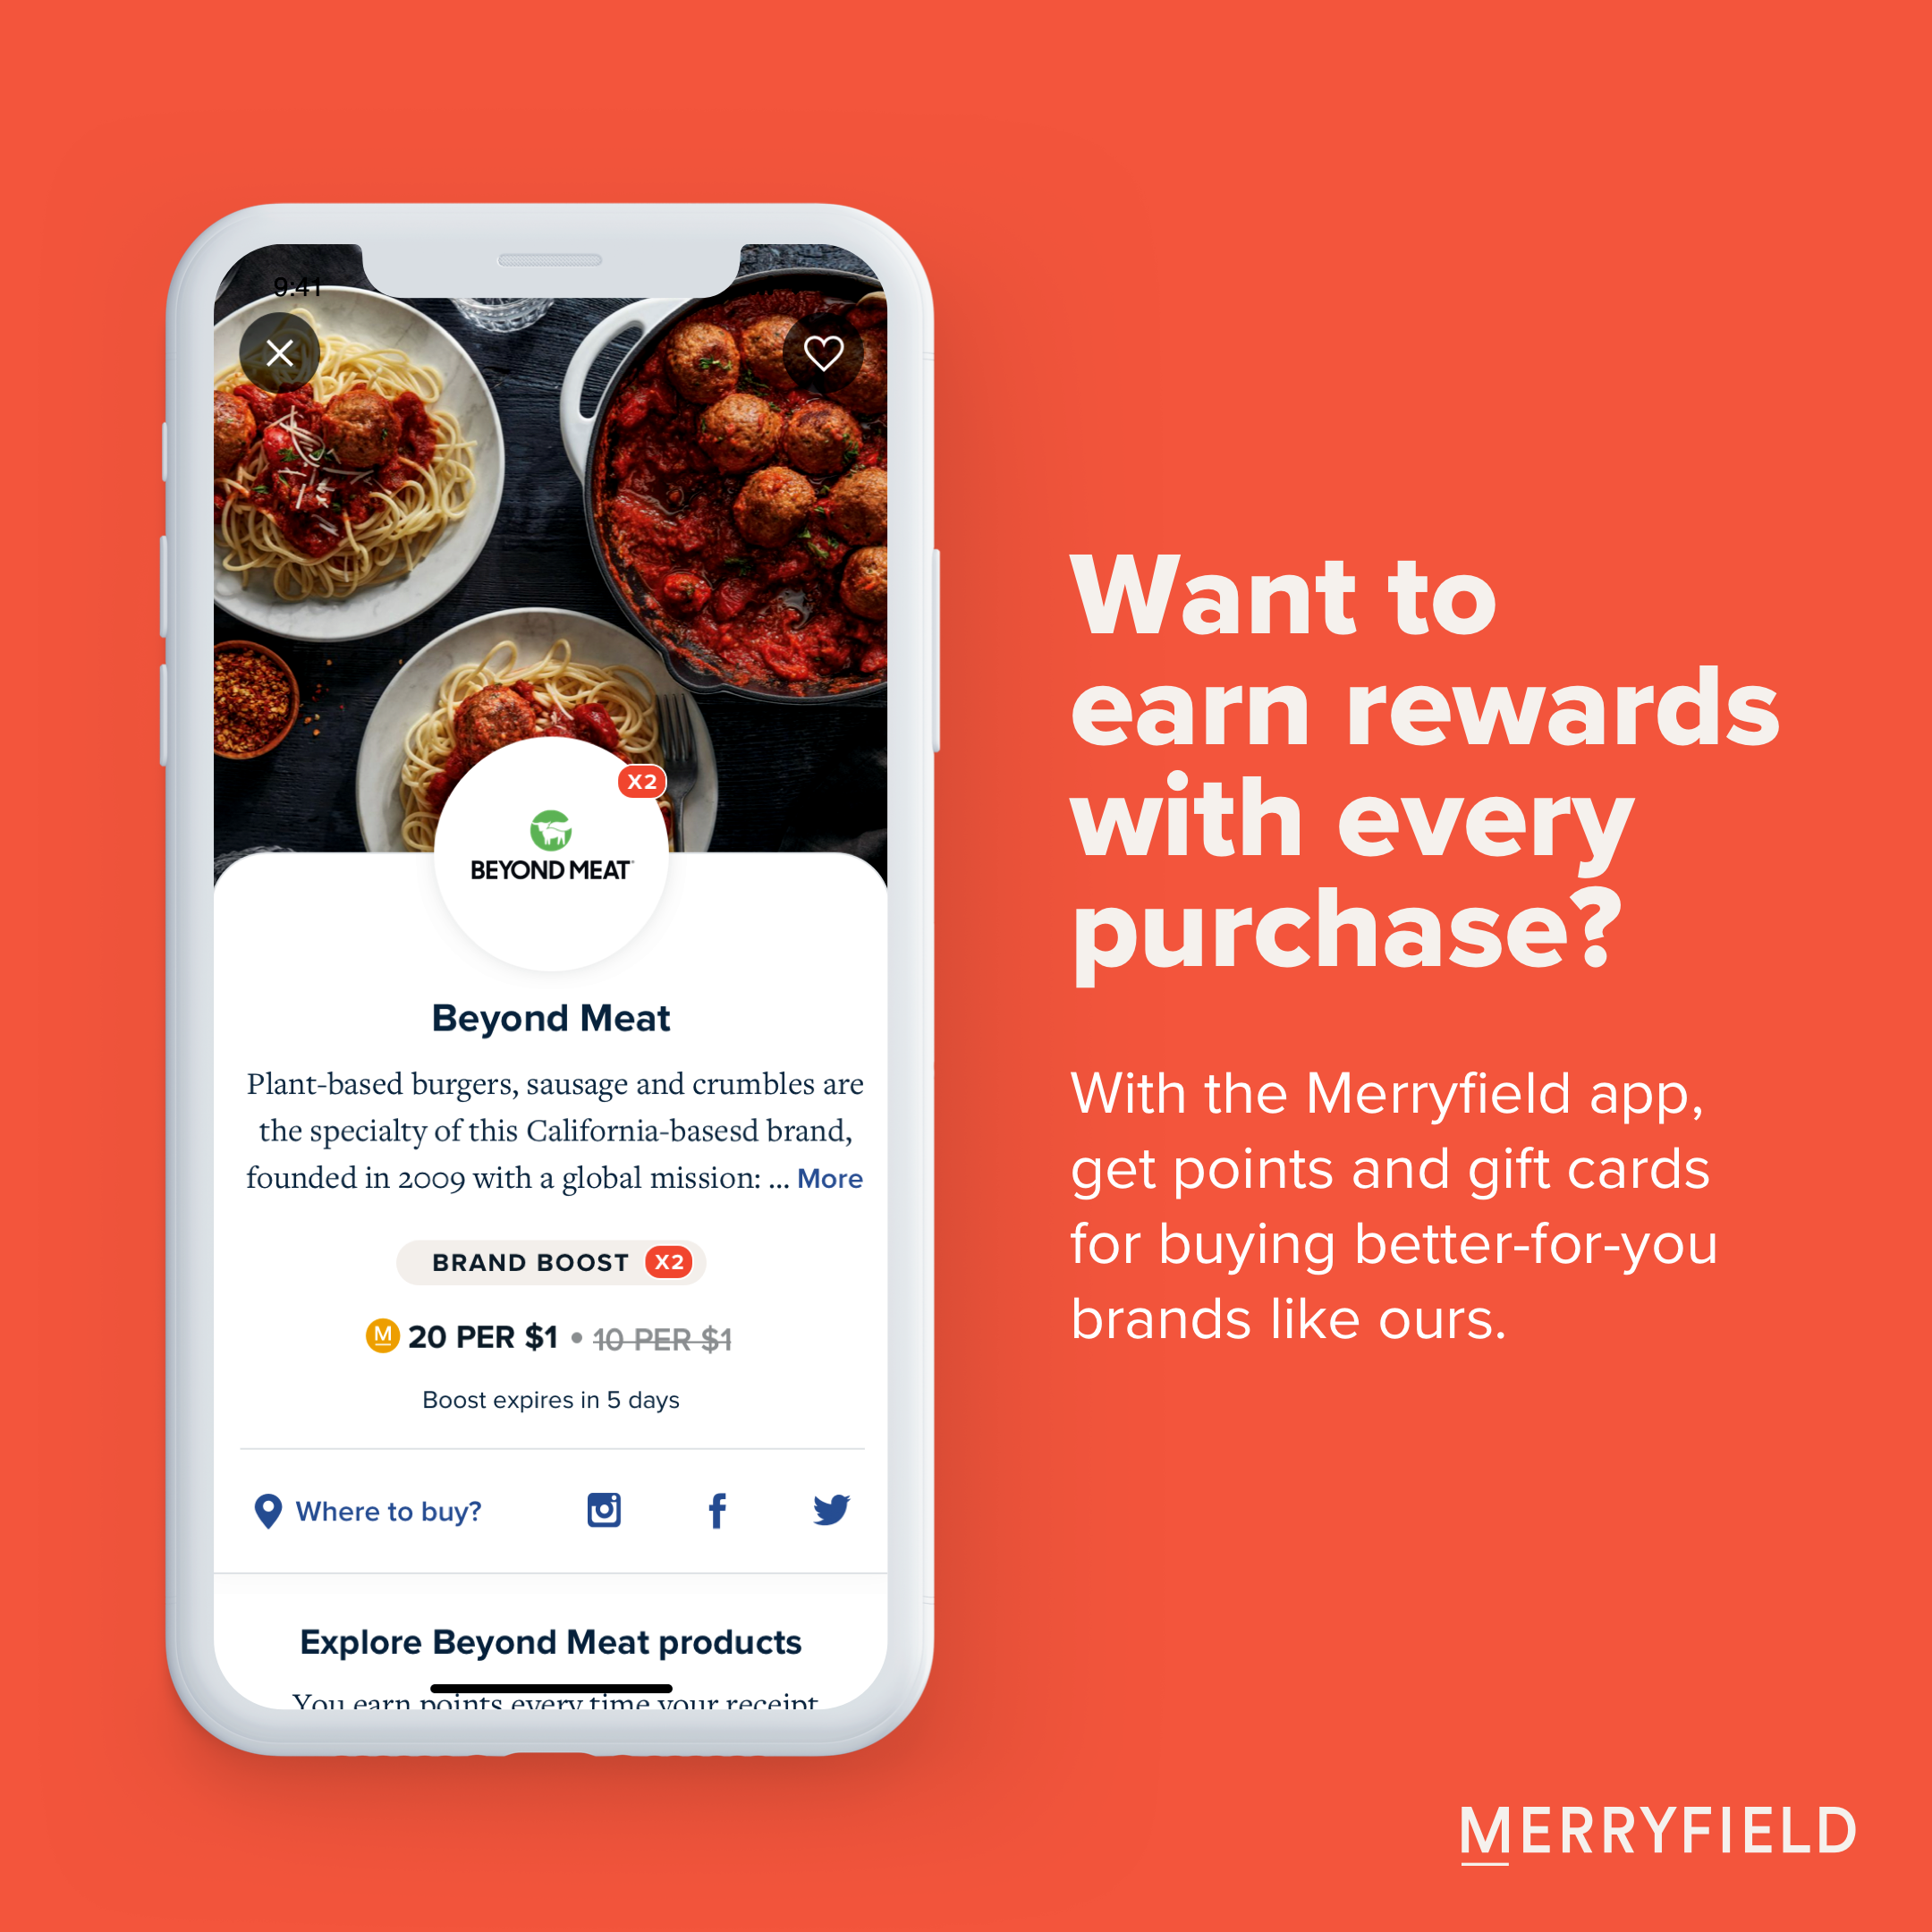 Want to earn rewards with every purchase? With the Merryfield app, get points and giftcards for buying better-for-you brands.